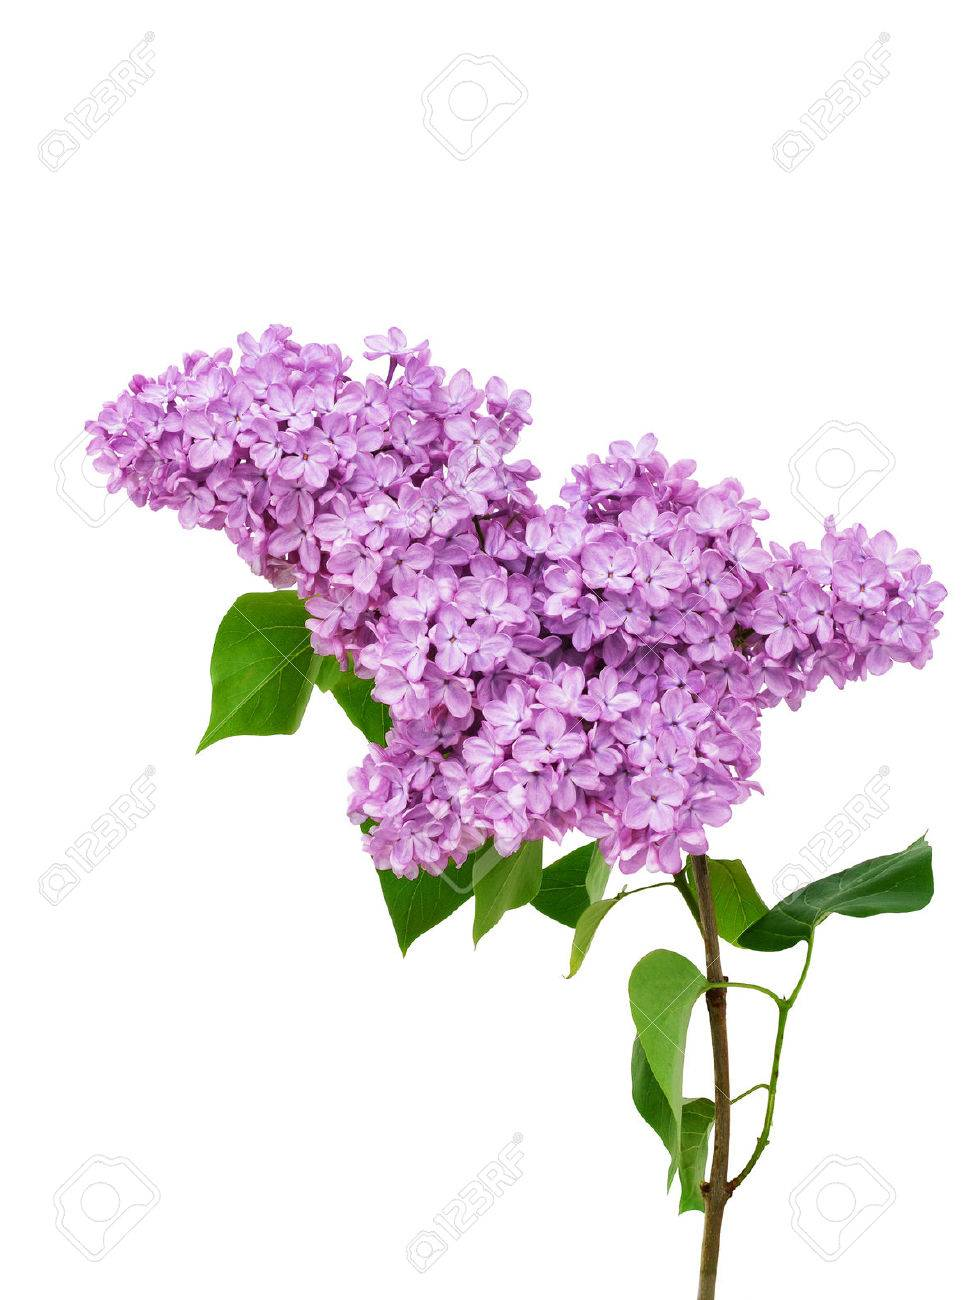 Lilac flower isolated on white background syringa vulgaris stock lilac flower isolated on white background syringa vulgaris stock photo 51151225 mightylinksfo